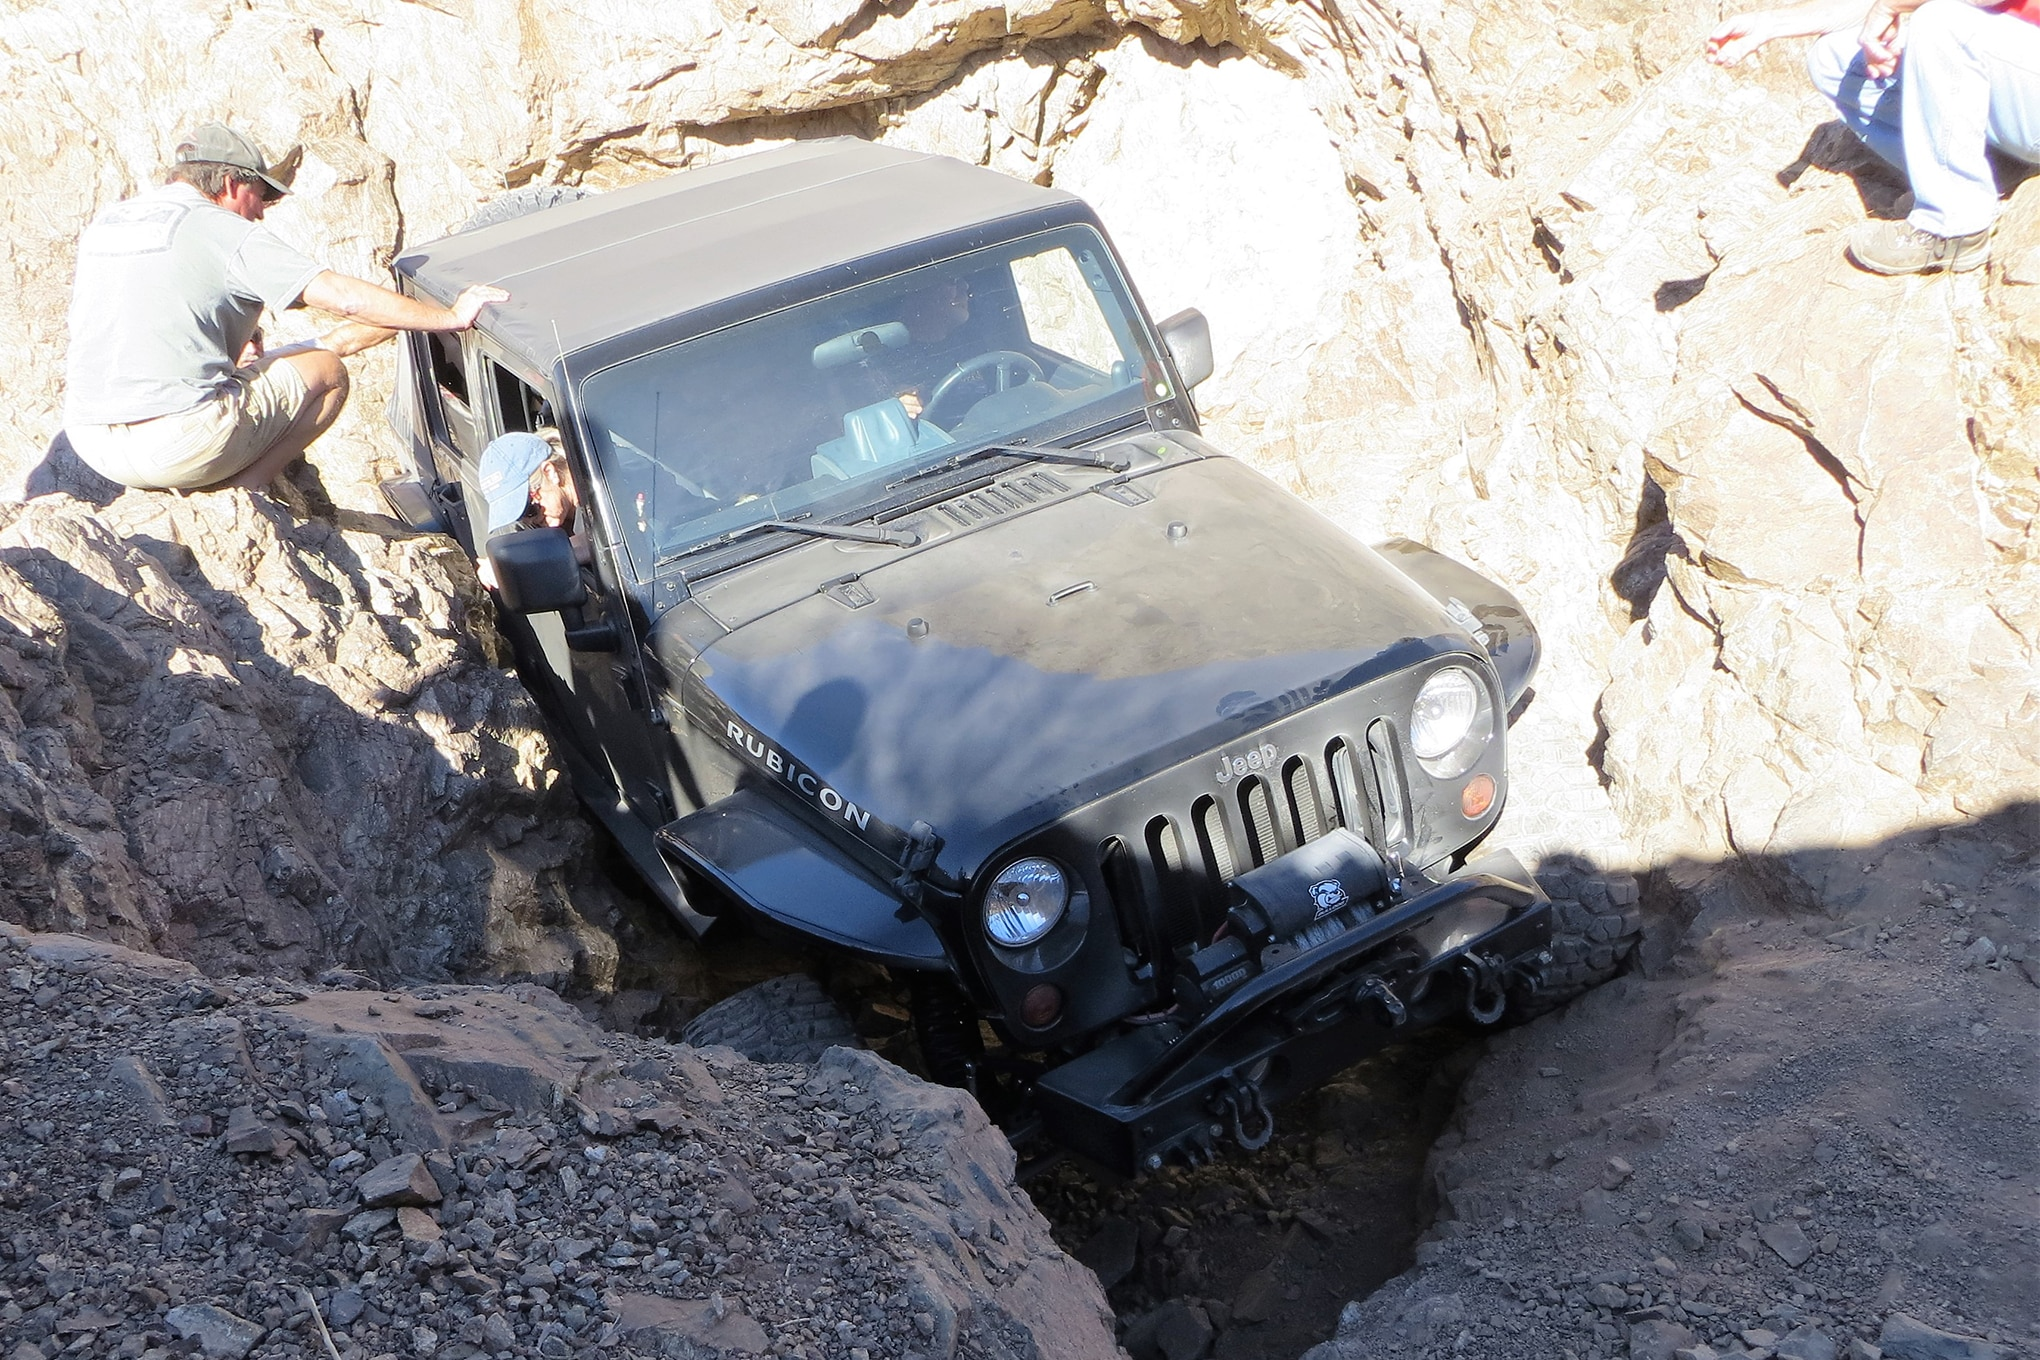 021 2015 desert splash devils elbow deliverance jk rubicon unlimited